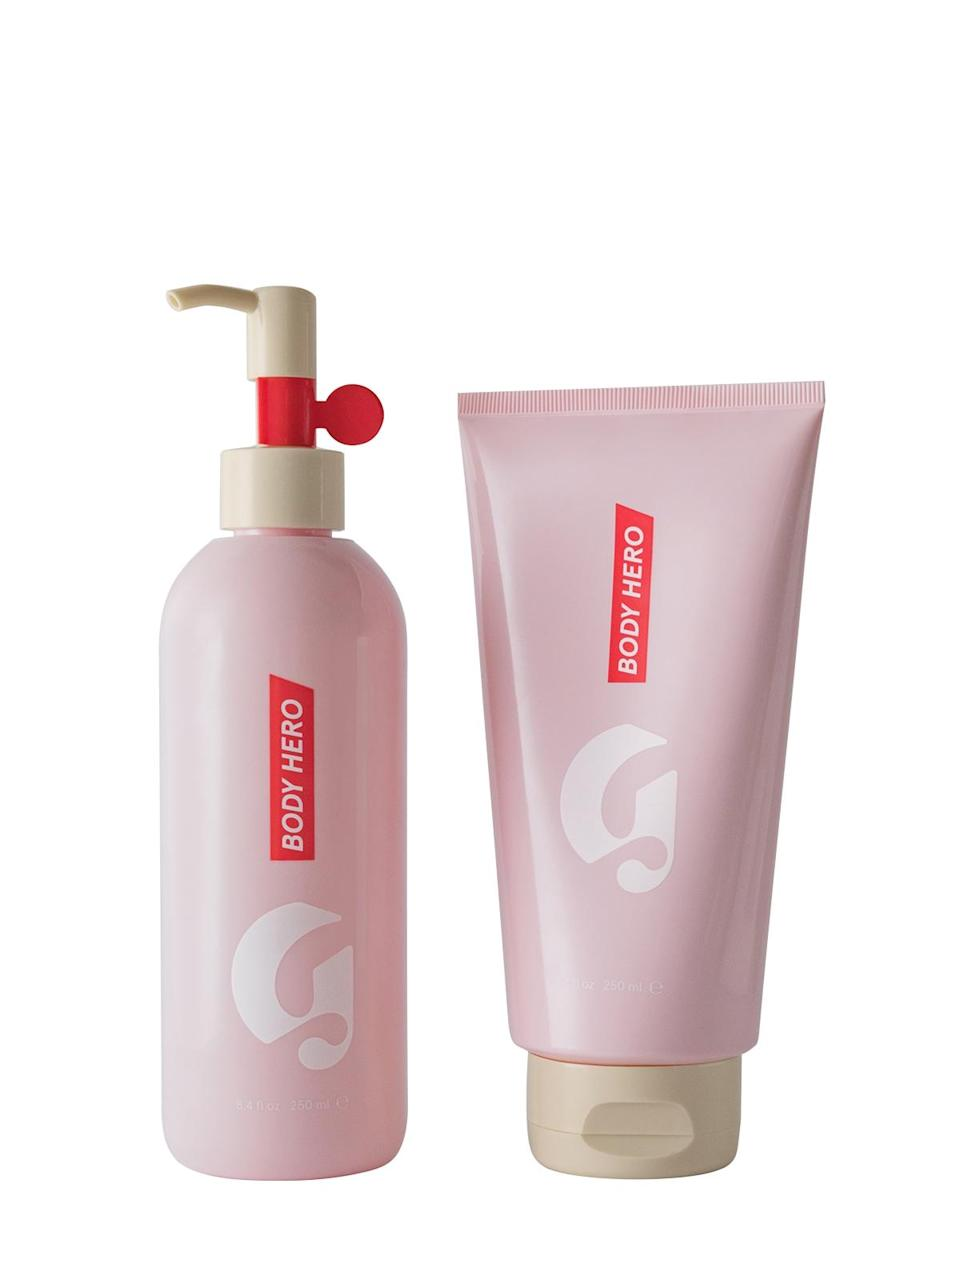 """<h3>Body Hero<br></h3> <br>The launches that gave us the buzzy Body Hero campaign are divisive. On the one hand, the oil cleanser-and-lightweight lotion duo is basically the fastest route to sexy skin in a bottle; on the other, the strong powdery scent doesn't do it for everyone. But it fades fast, so if you can bear to smell like a full-on bouquet from the shoulders down for a few minutes, the lotion is worth it for scoring soft, dewy limbs.<br><br><strong>Glossier</strong> Body Hero Duo, $, available at <a href=""""https://go.skimresources.com/?id=30283X879131&url=https%3A%2F%2Fglossier.sjv.io%2F1MKQz"""" rel=""""nofollow noopener"""" target=""""_blank"""" data-ylk=""""slk:Glossier"""" class=""""link rapid-noclick-resp"""">Glossier</a><br>"""